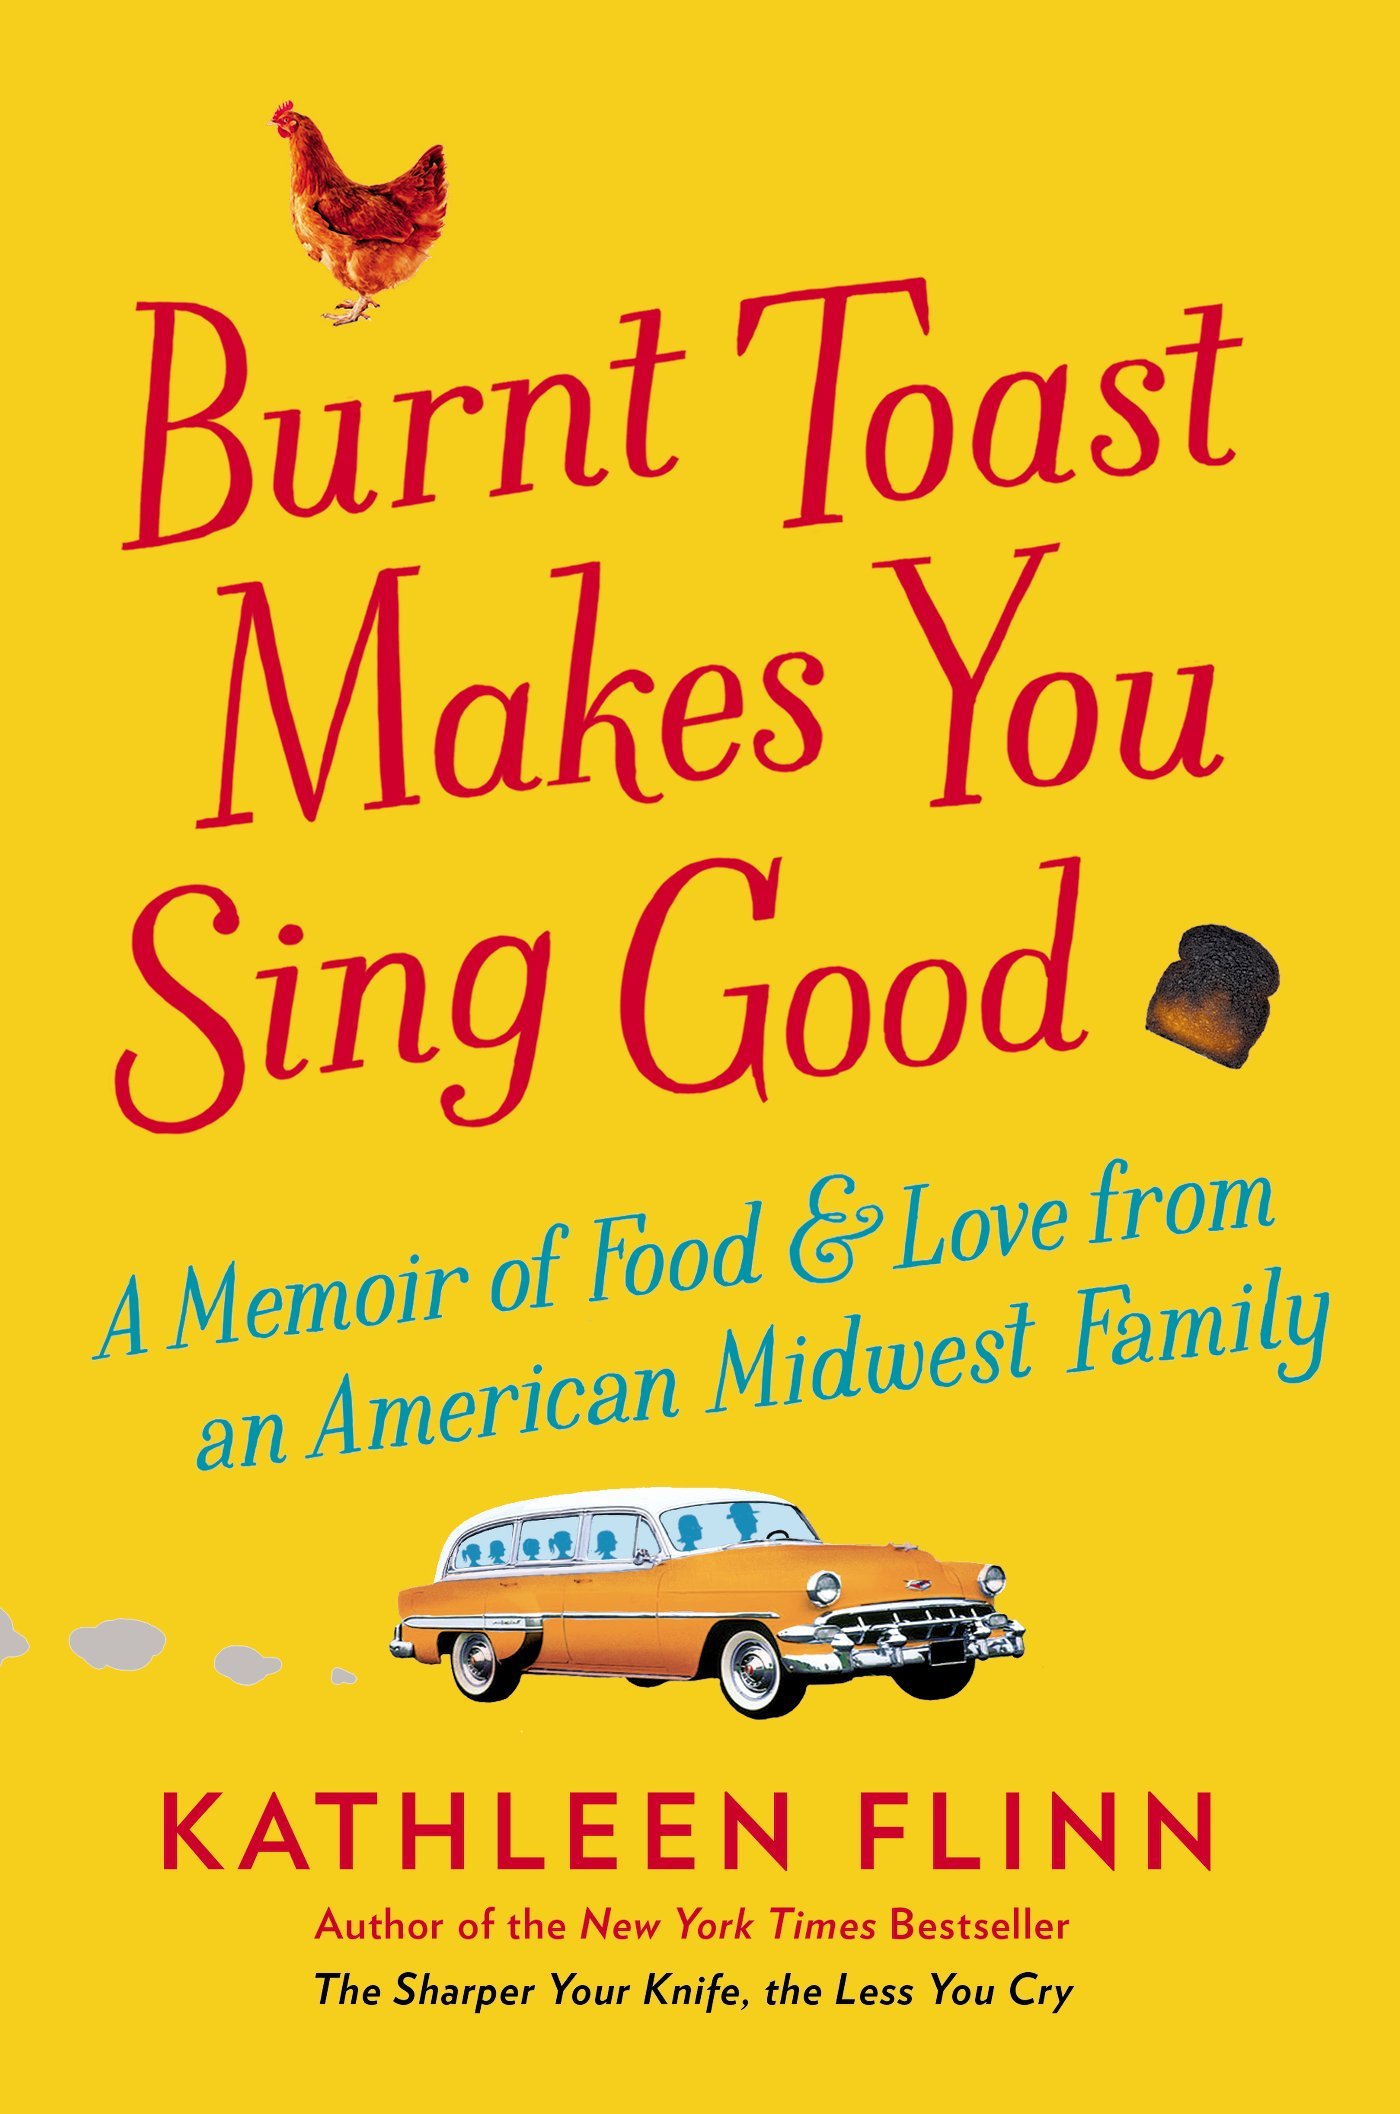 burnt toast makes you sing good by kathleen flinn giveaway the naptime chef. Black Bedroom Furniture Sets. Home Design Ideas